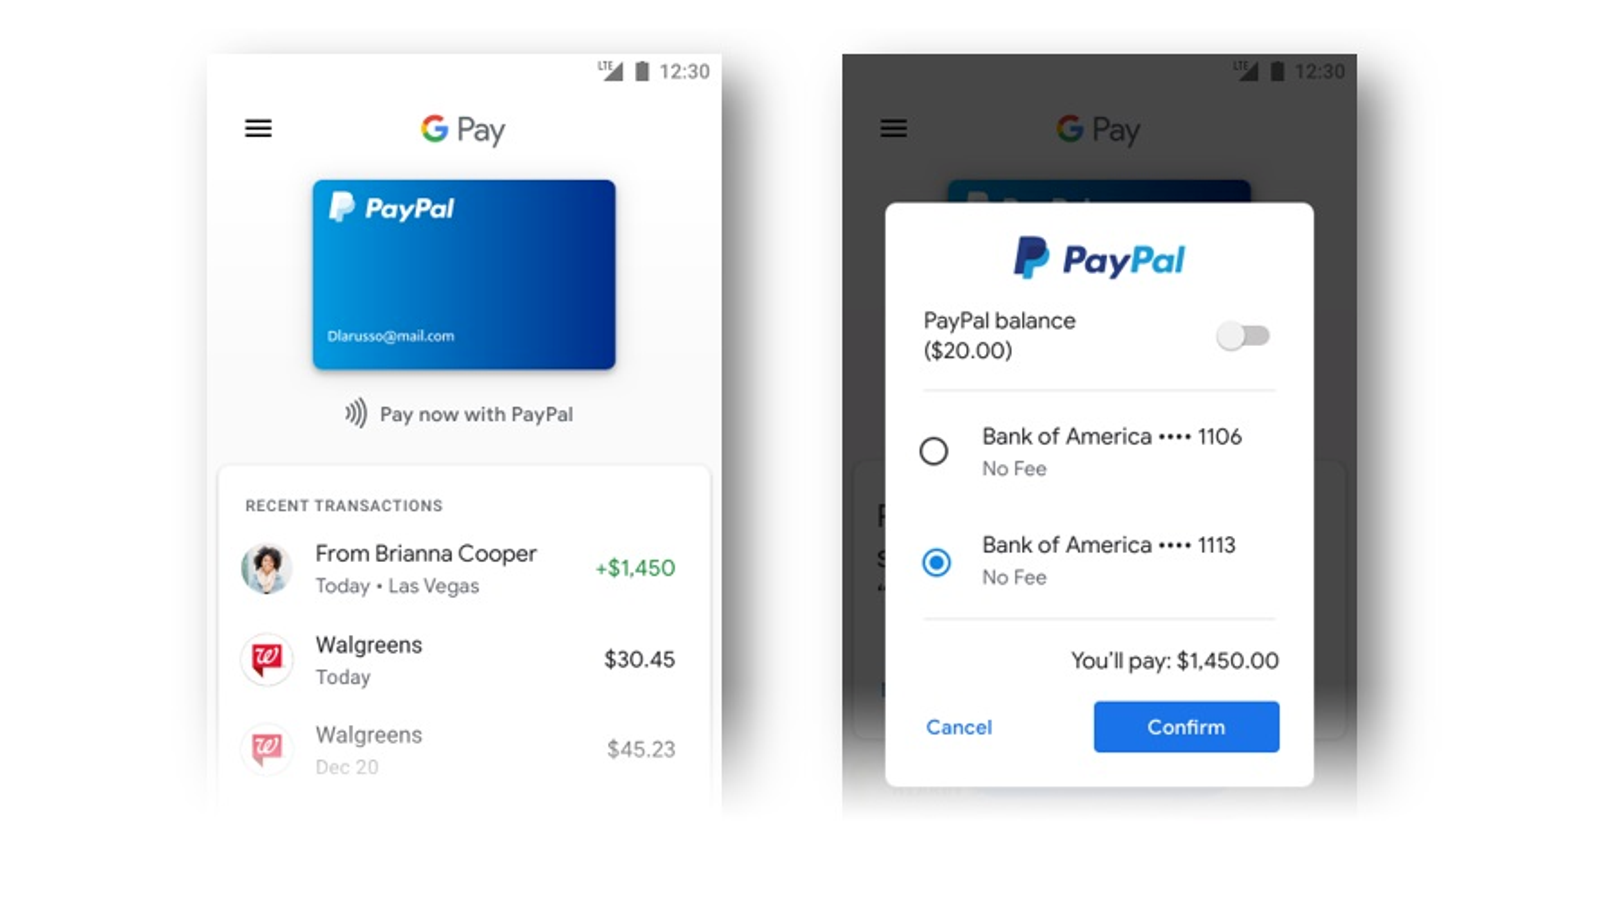 How to Use PayPal via Google Pay on YouTube, Gmail, and Google Play